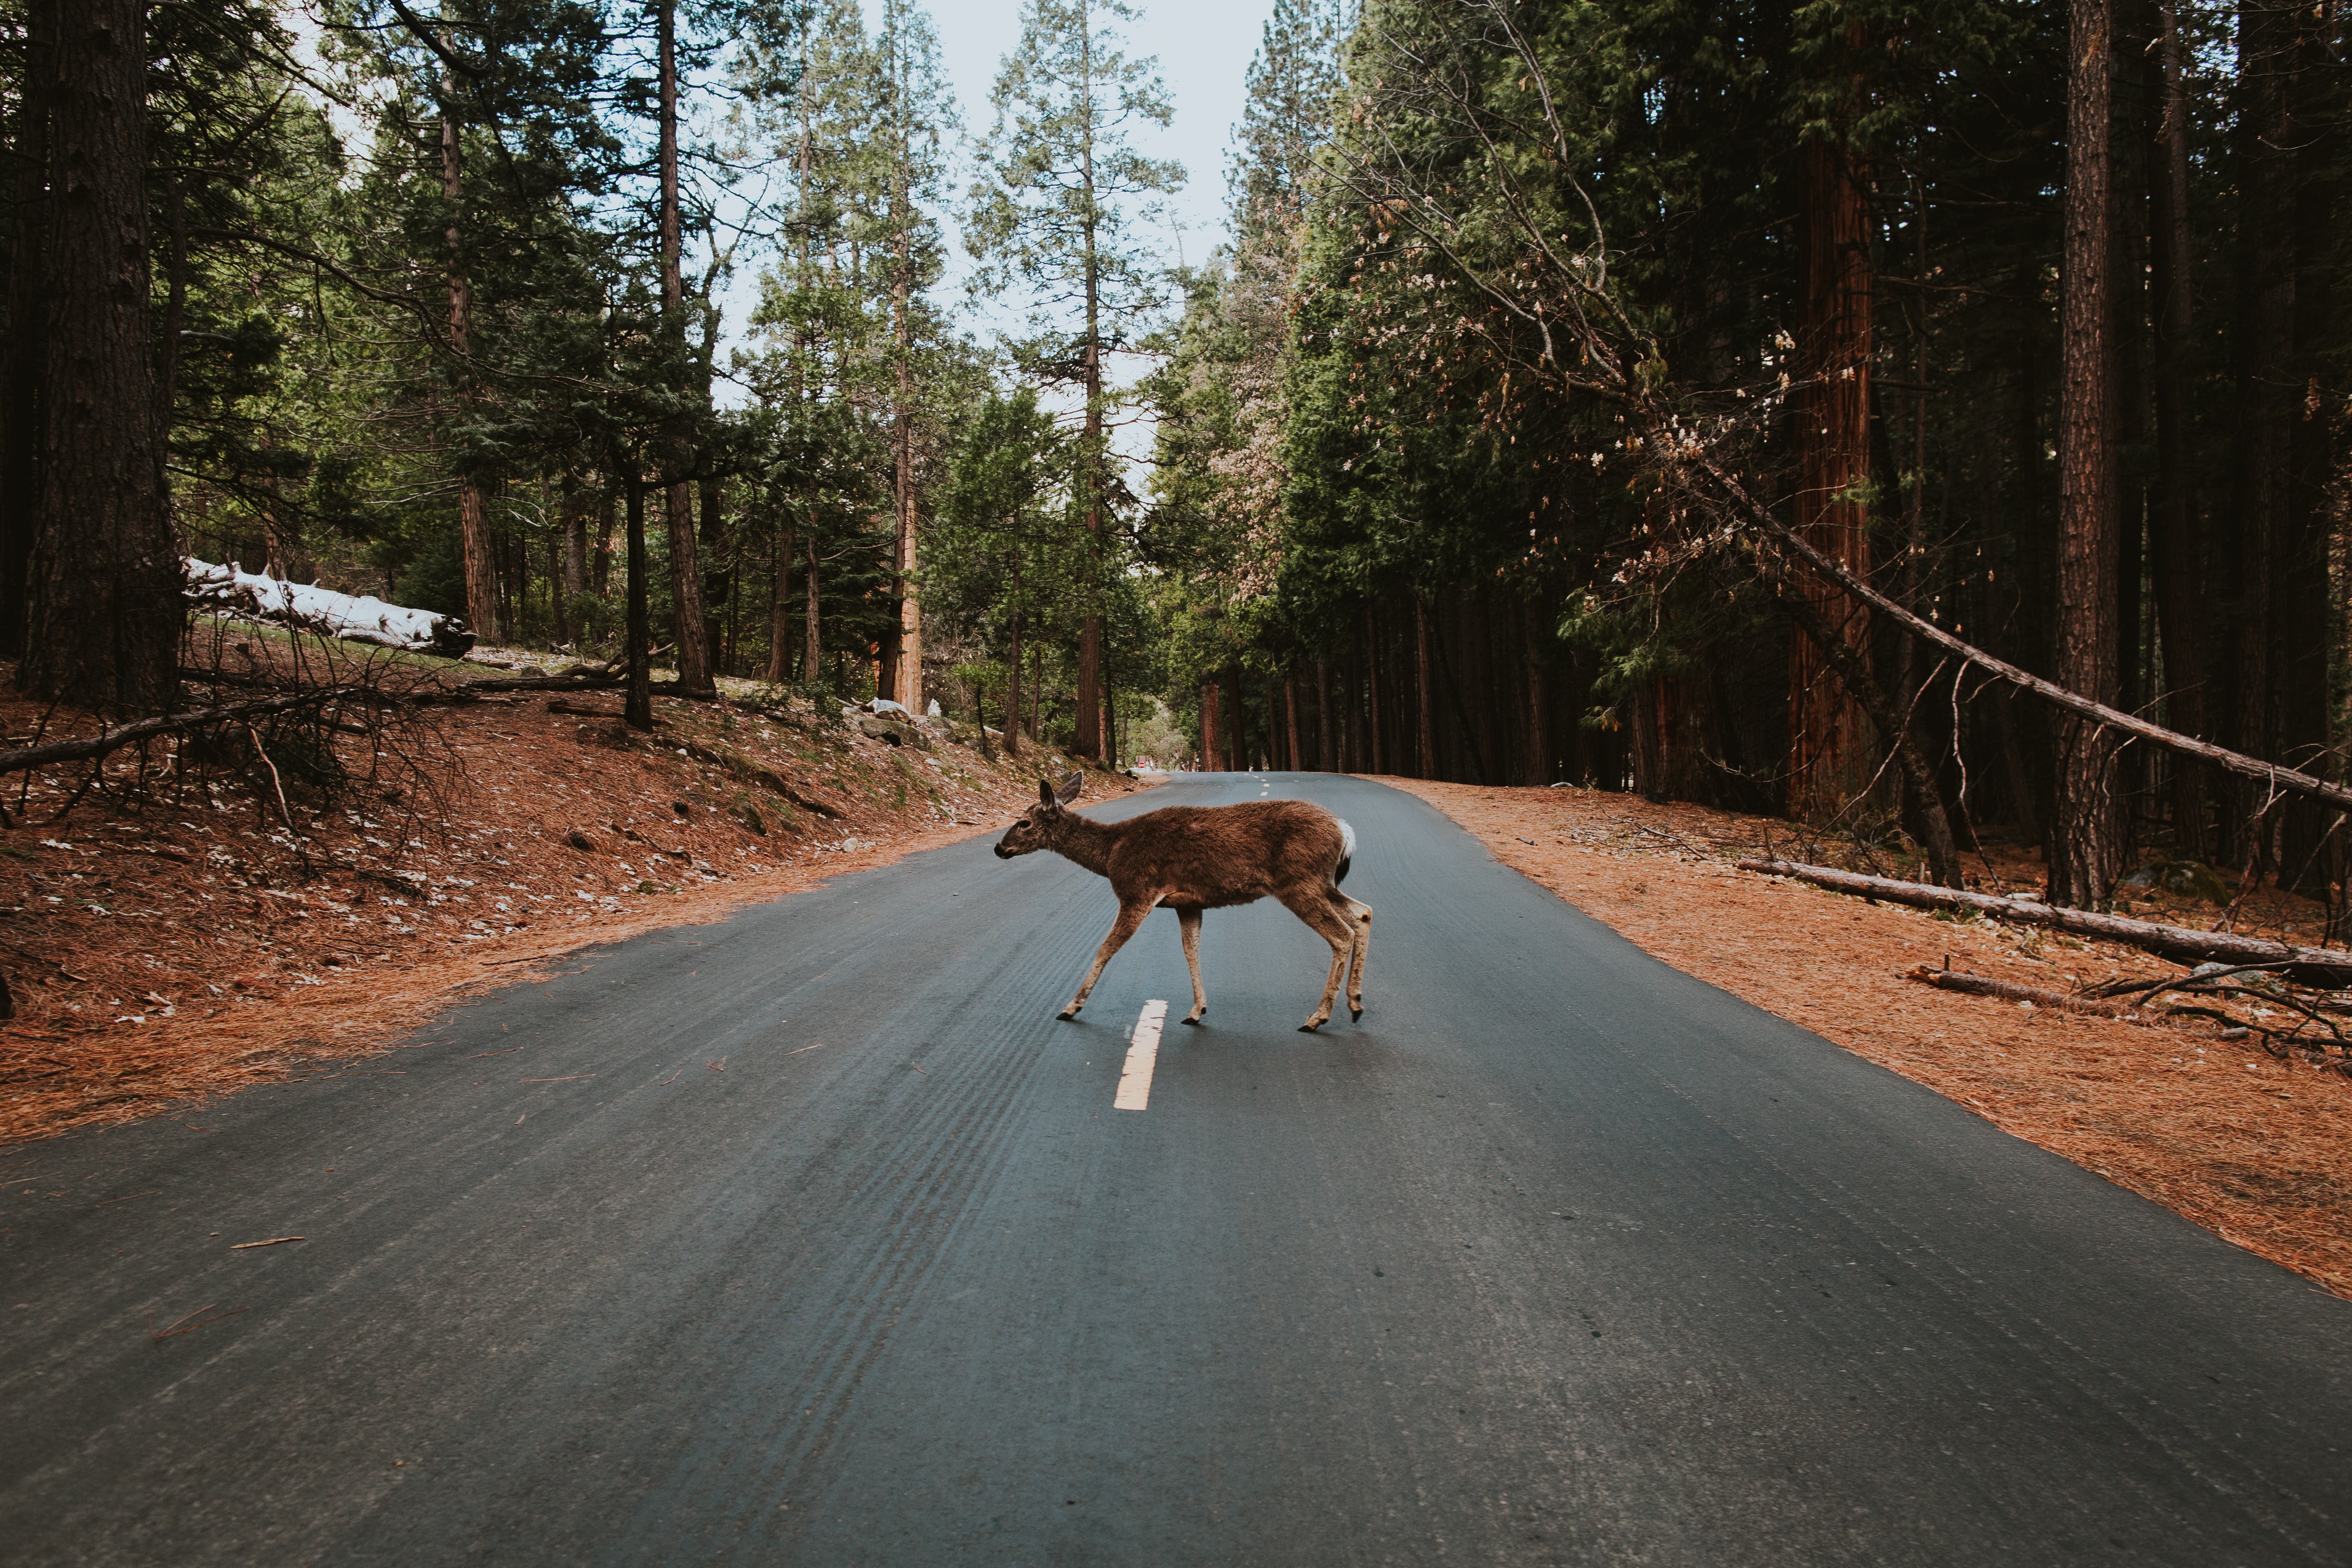 A deer crossing an asphalt road in Yosemite National Park